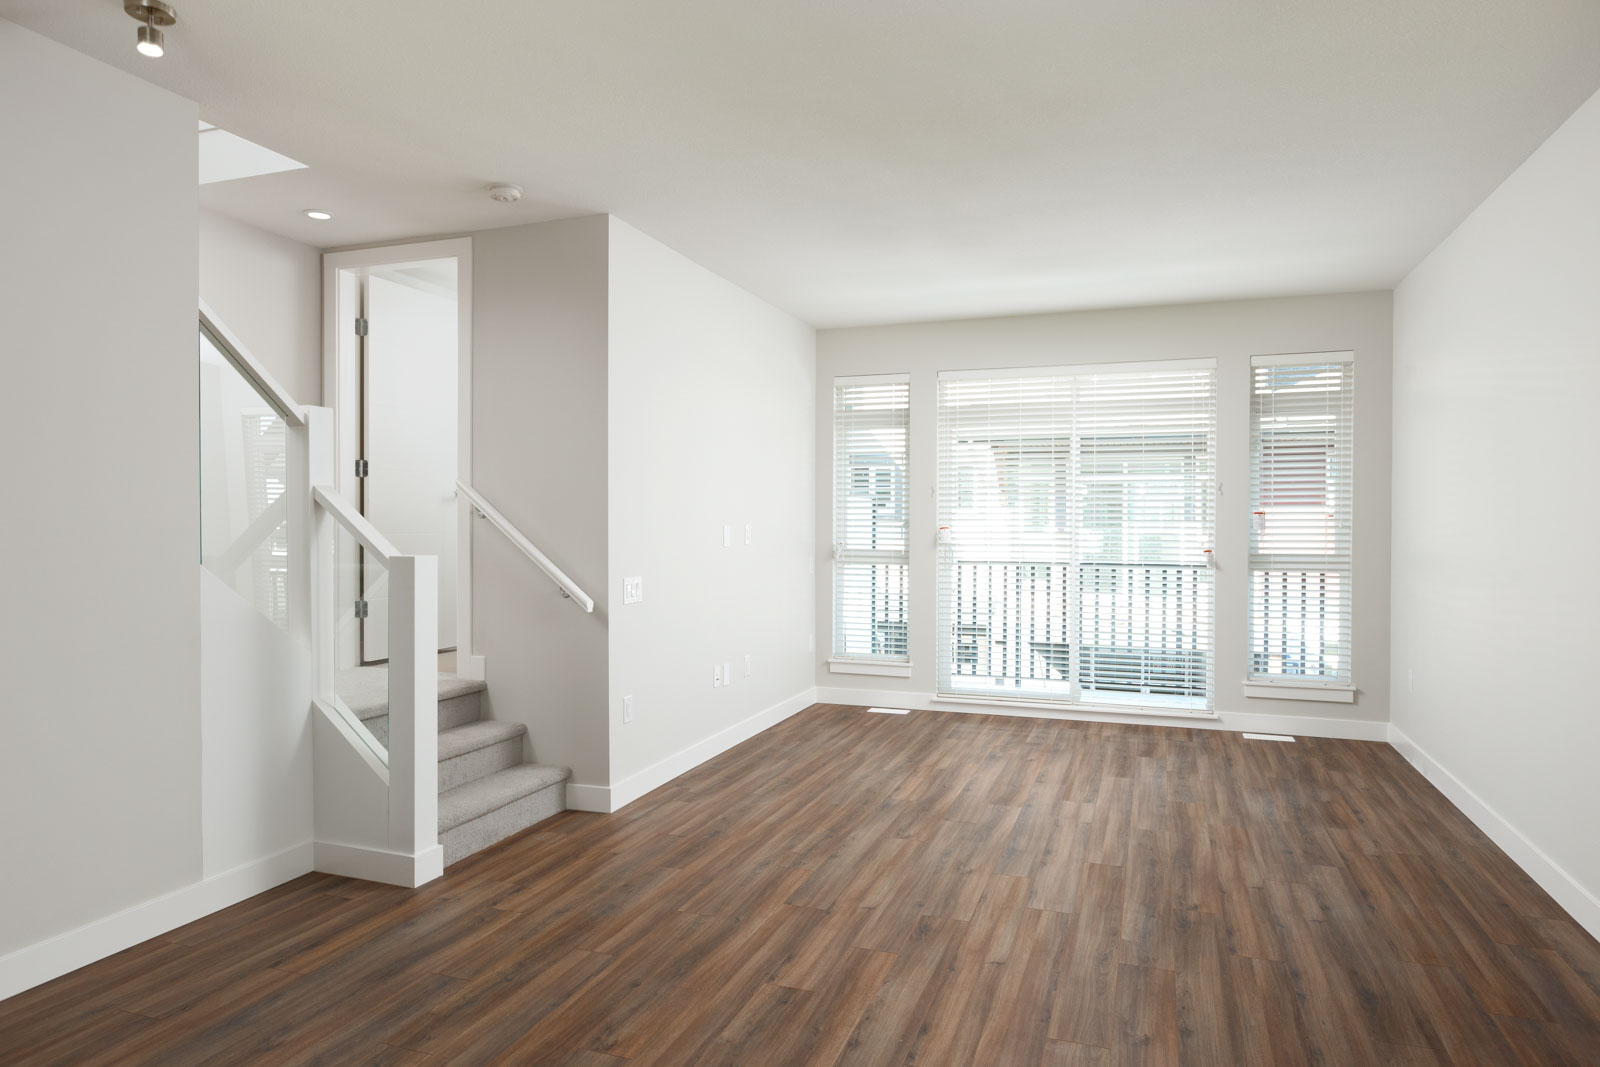 Living area with access to private balcony in Richmond rental townhome.